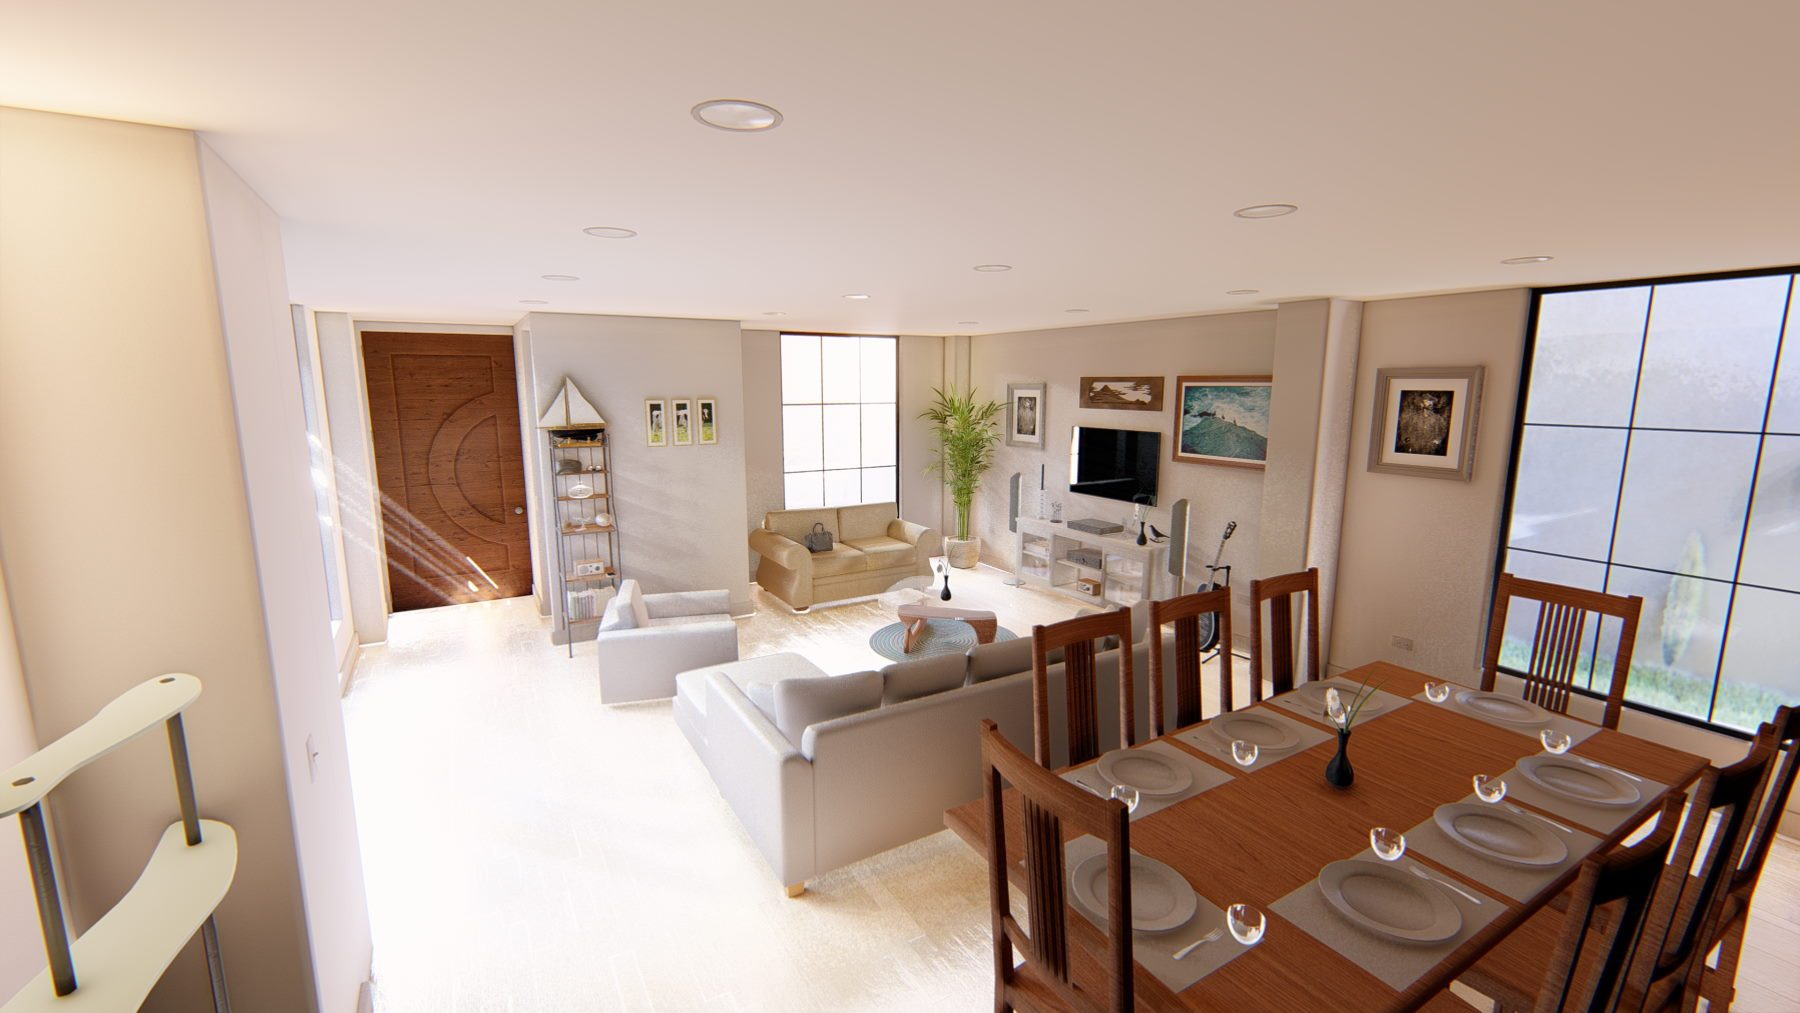 Living room space with an open concept